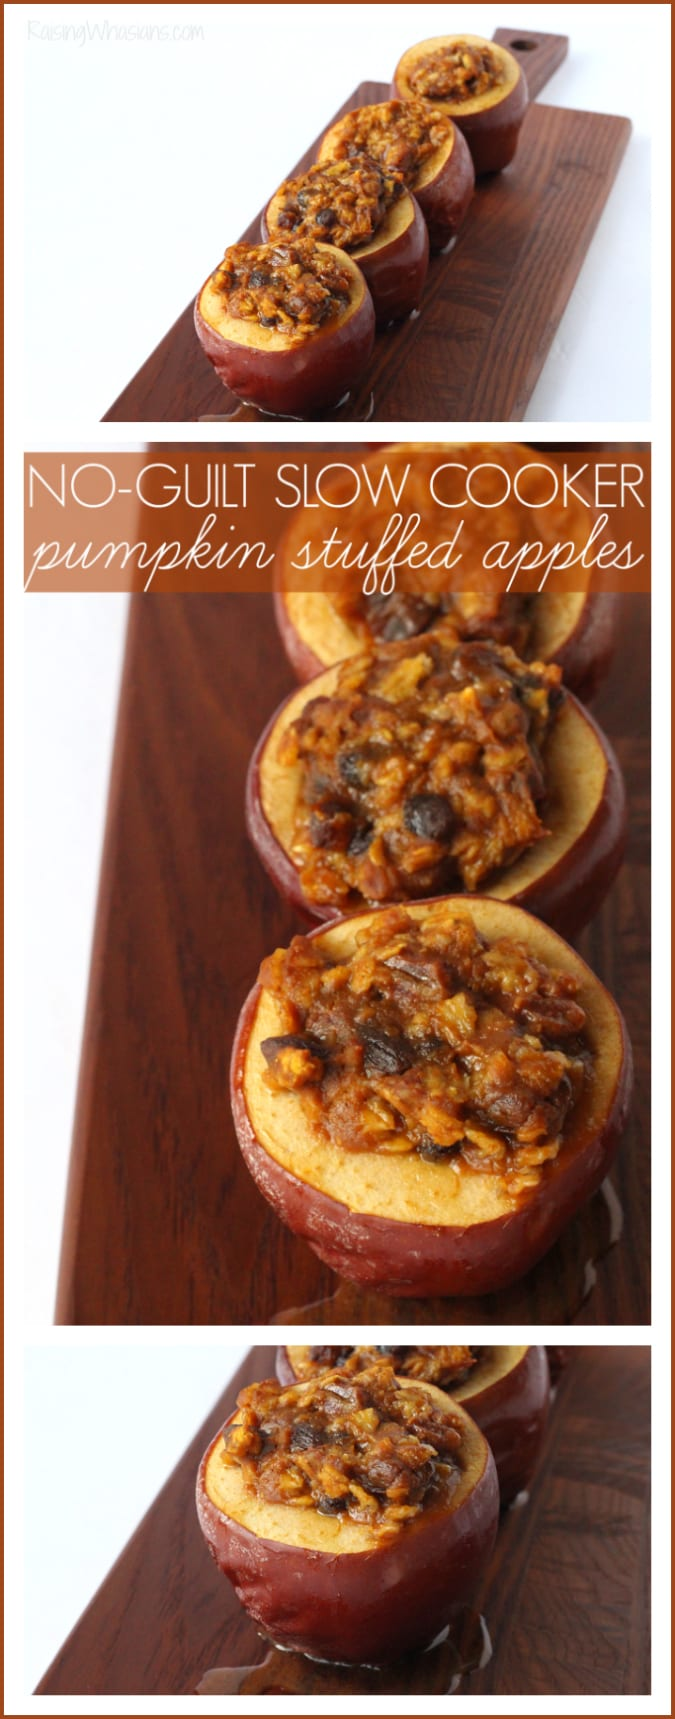 Healthy slow cooker pumpkin stuffed apples